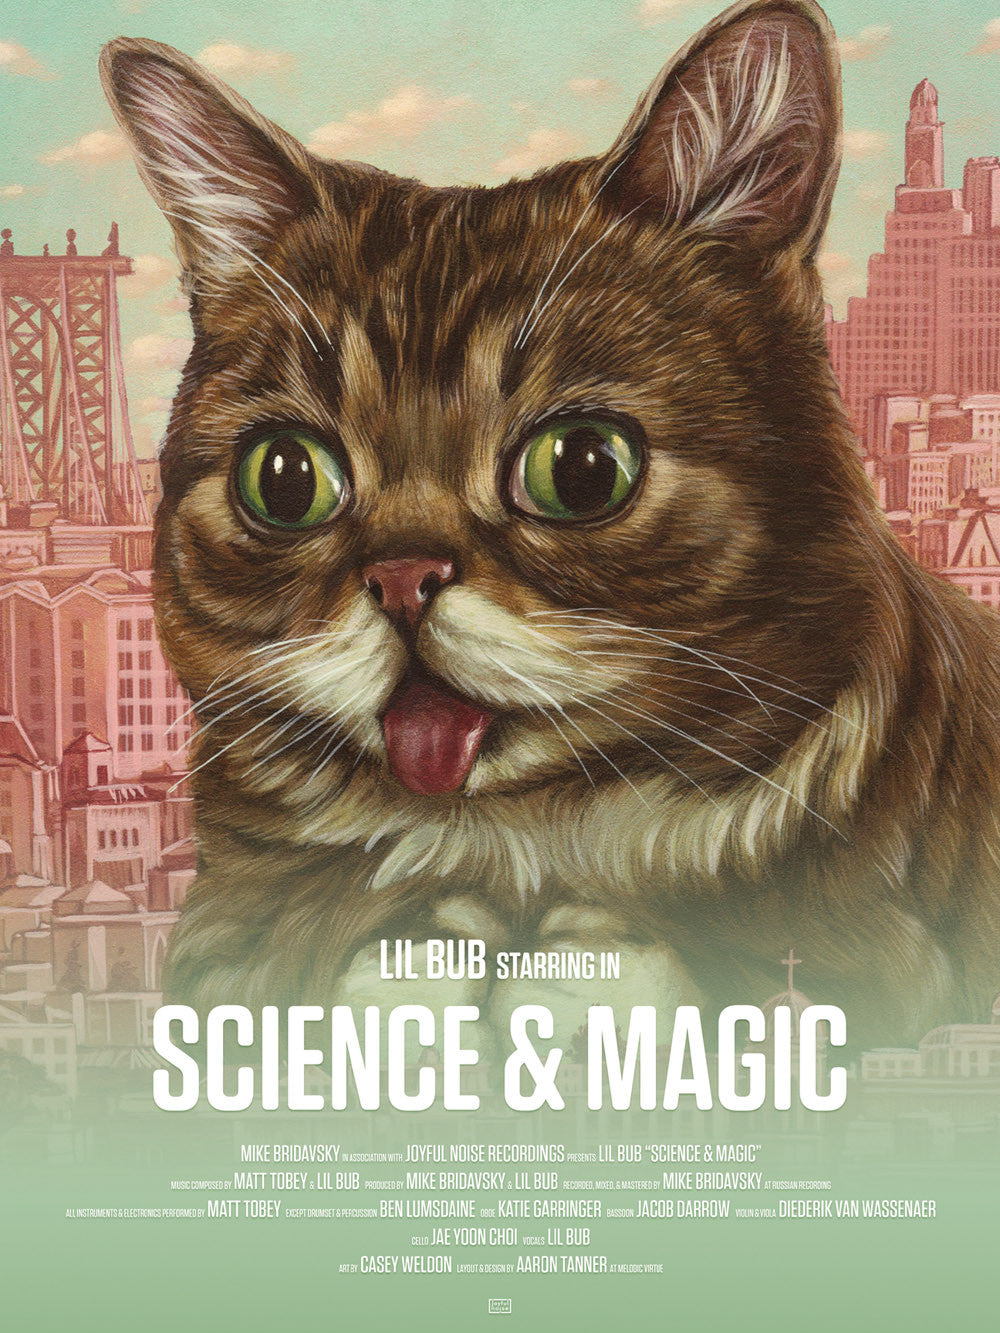 Science & Magic: A Soundtrack To The Universe - Lil BUB - Joyful Noise Recordings - 4